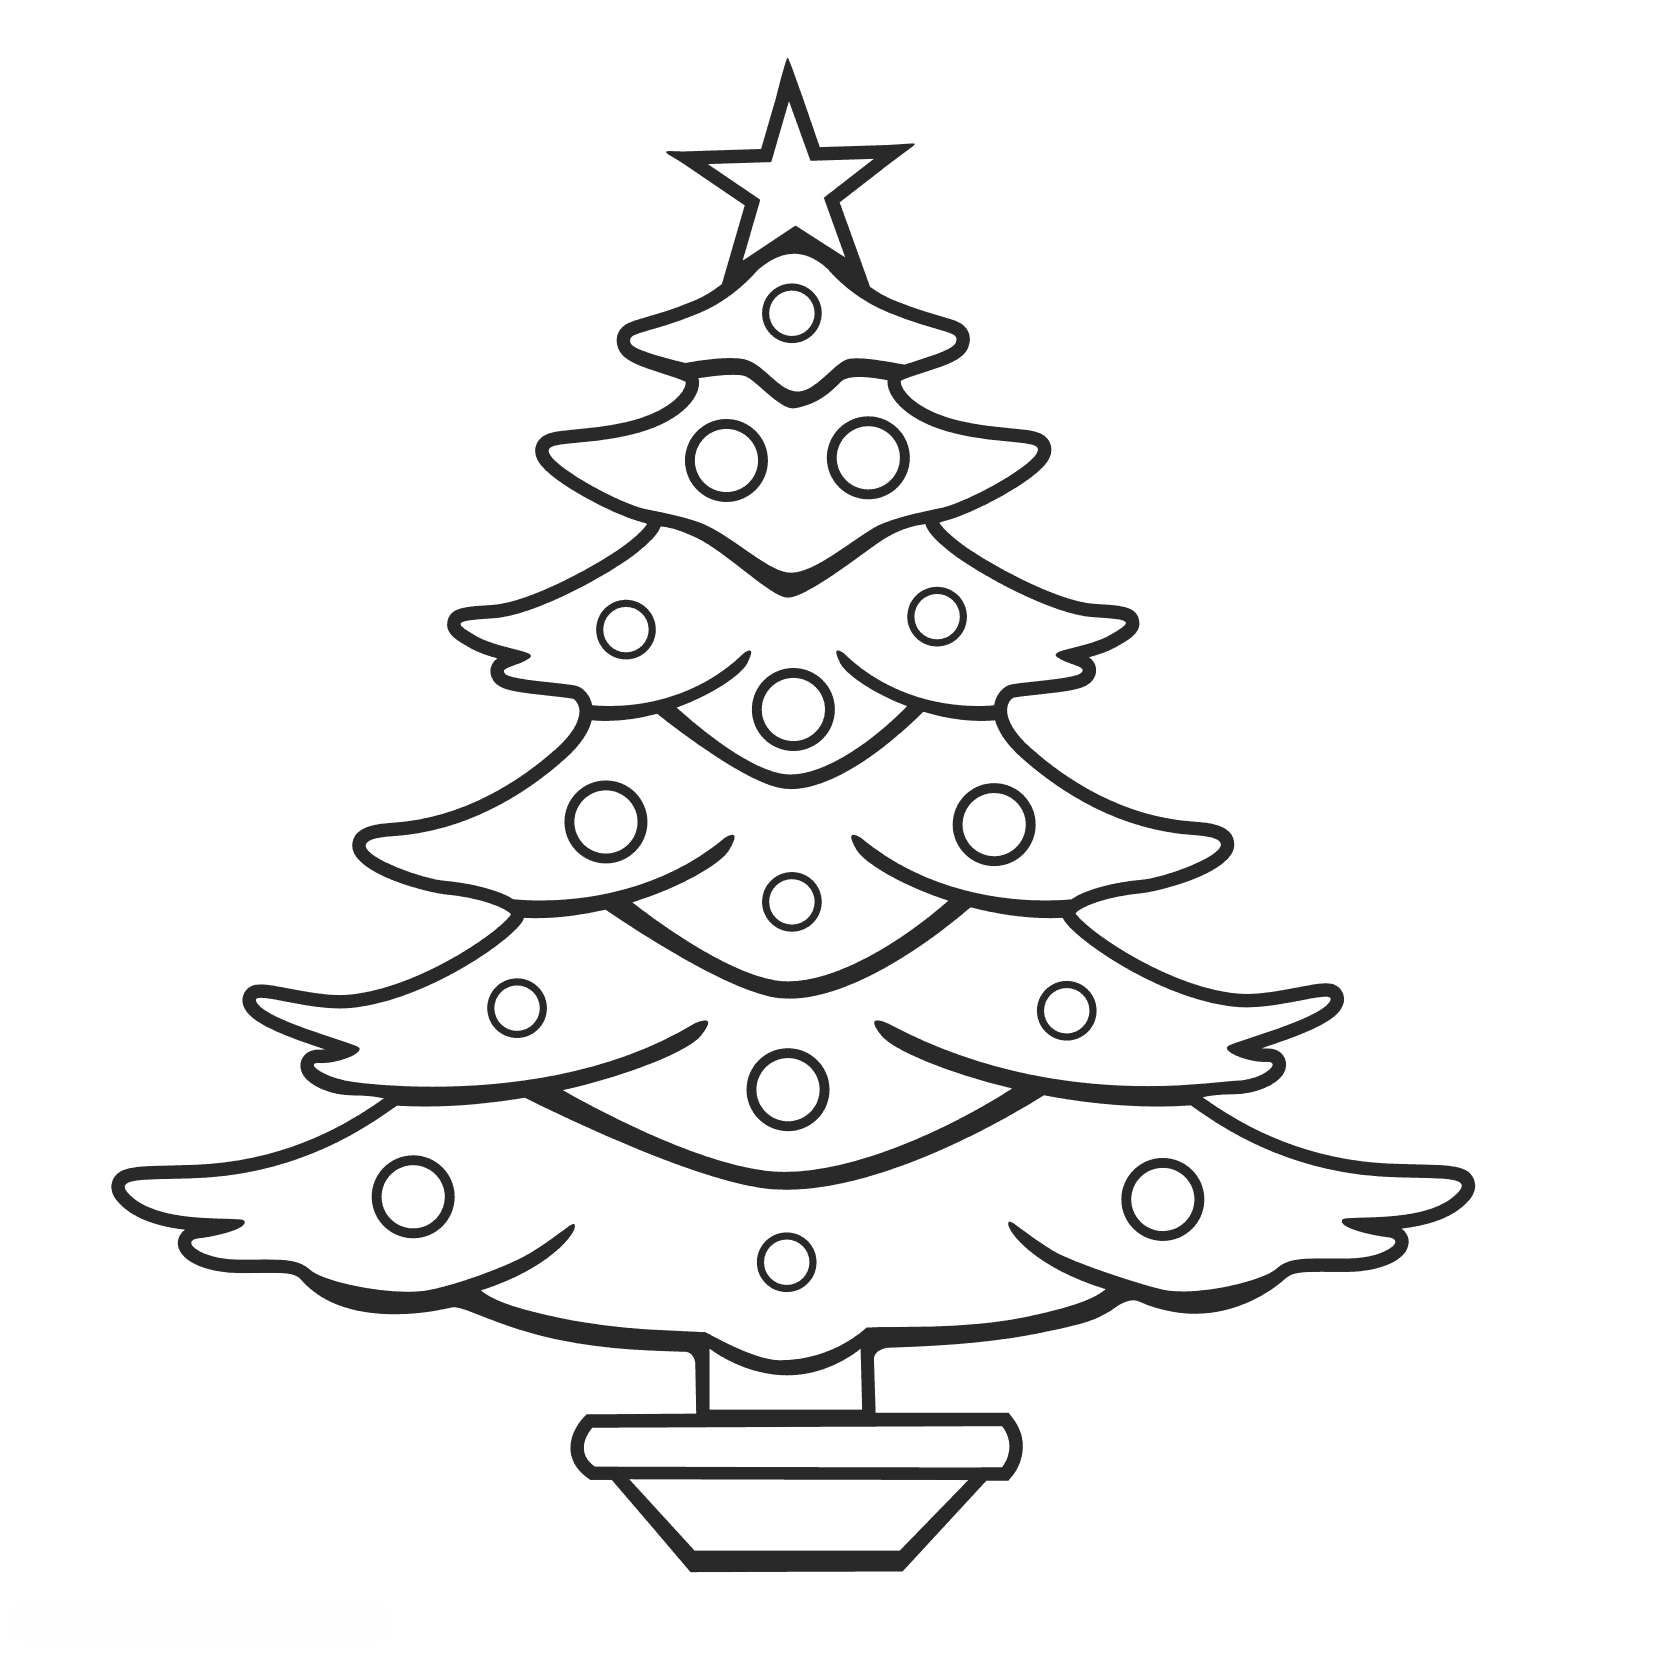 coloring pages trees free printable christmas tree coloring pages for kids coloring pages trees